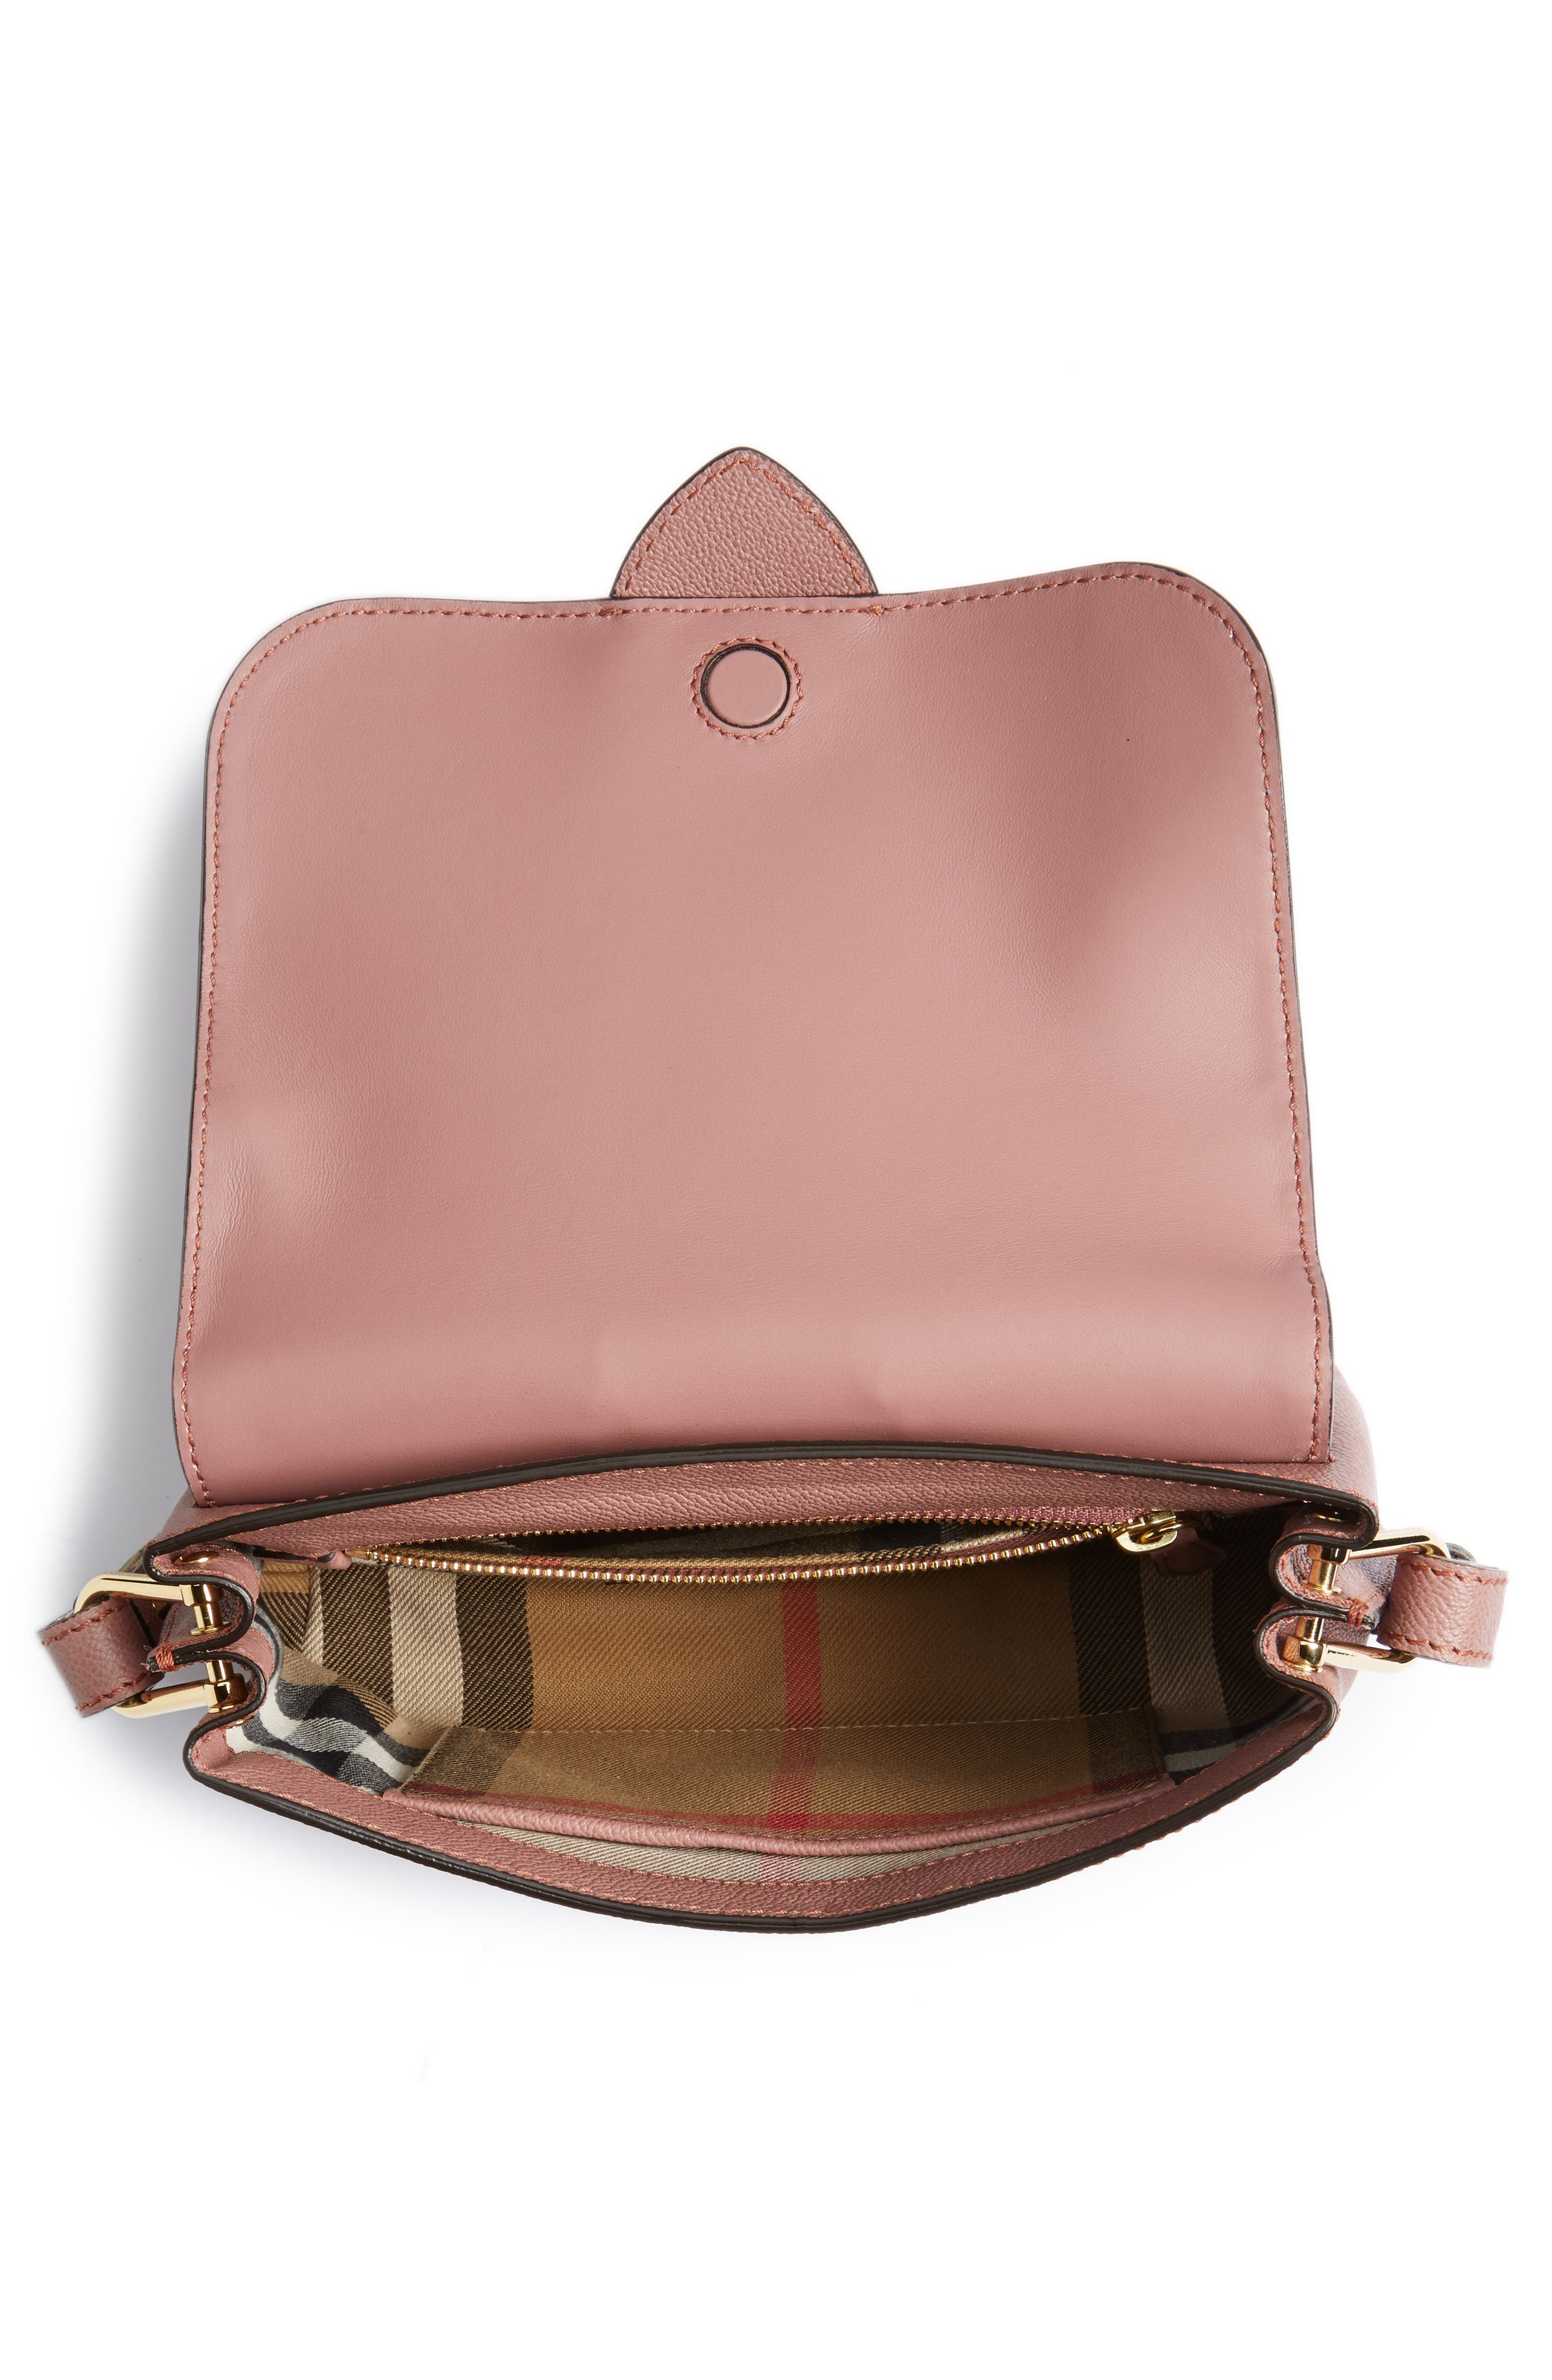 Small Medley Leather Shoulder Bag,                             Alternate thumbnail 4, color,                             Dusty Pink